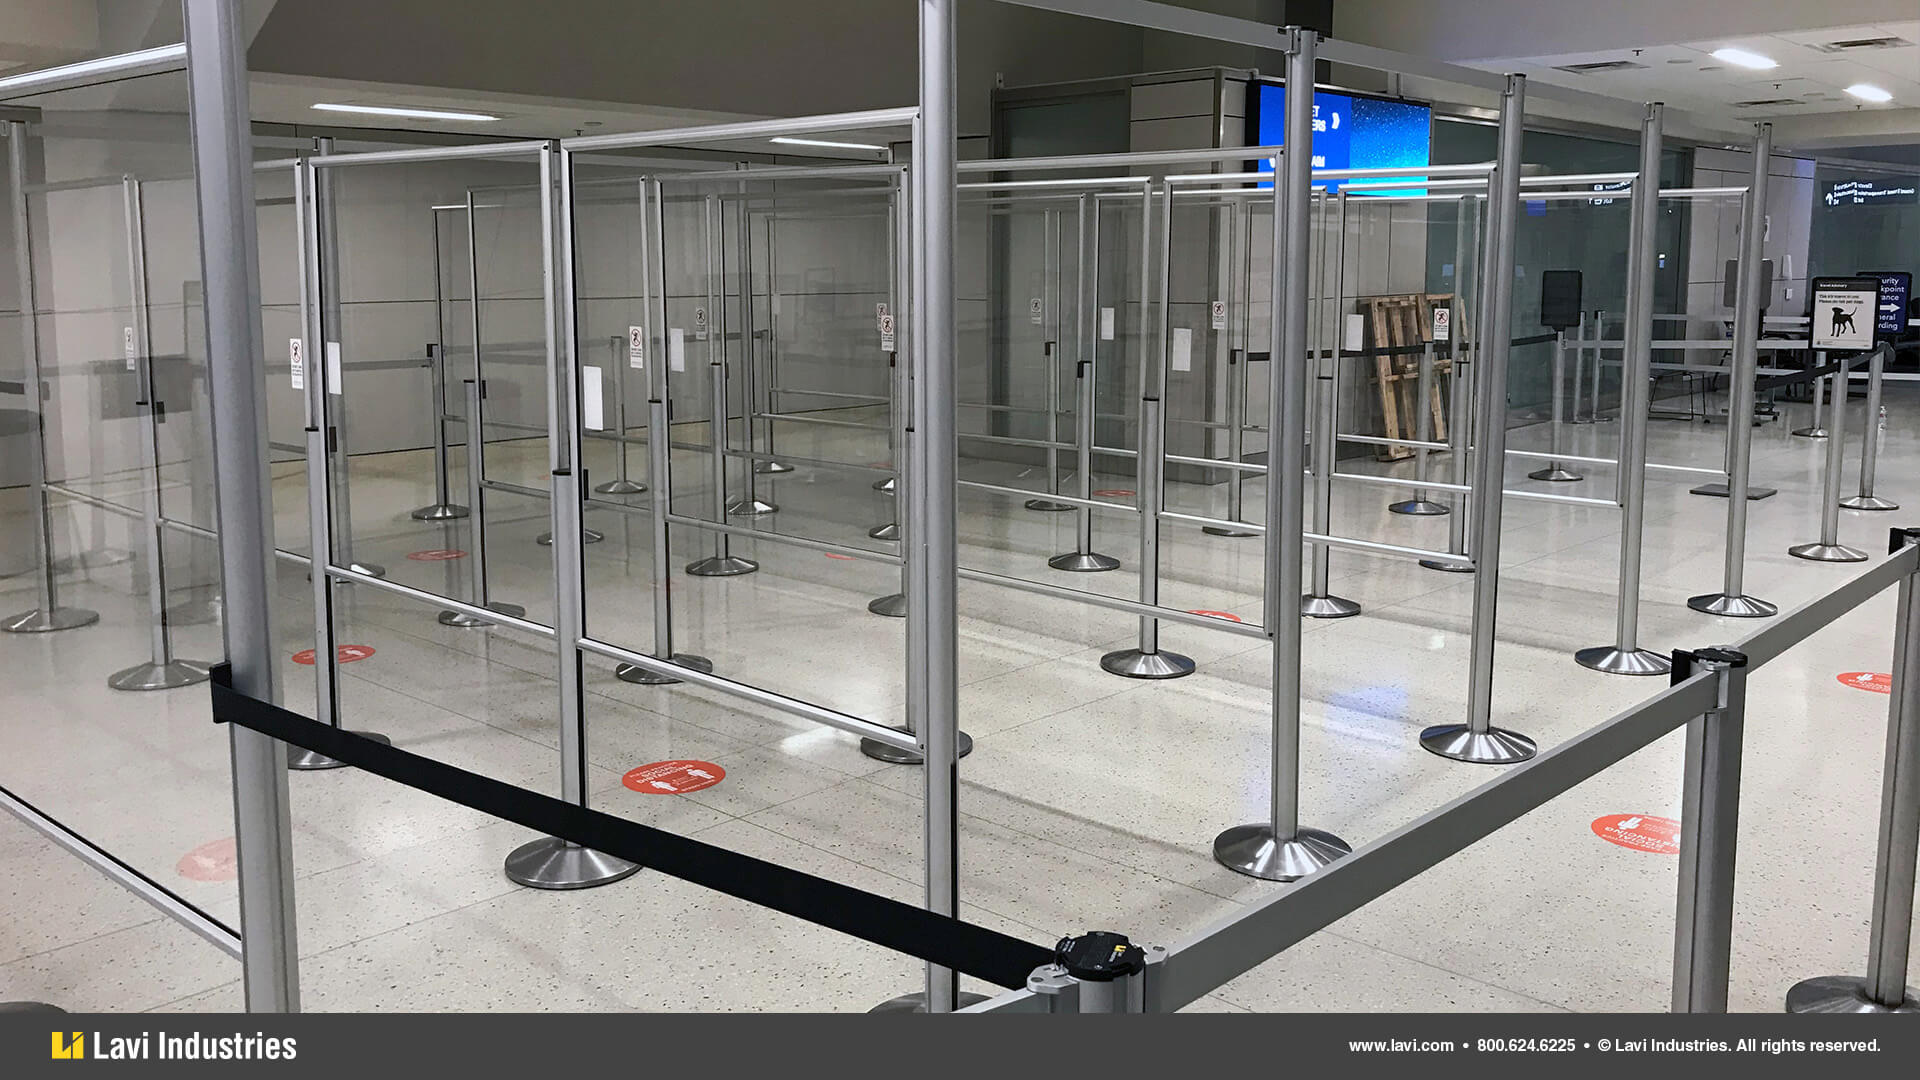 Airport,Barriers,Queuing,Signage,SocialDistancing,RigidRail,Stanchions,QueueGuard